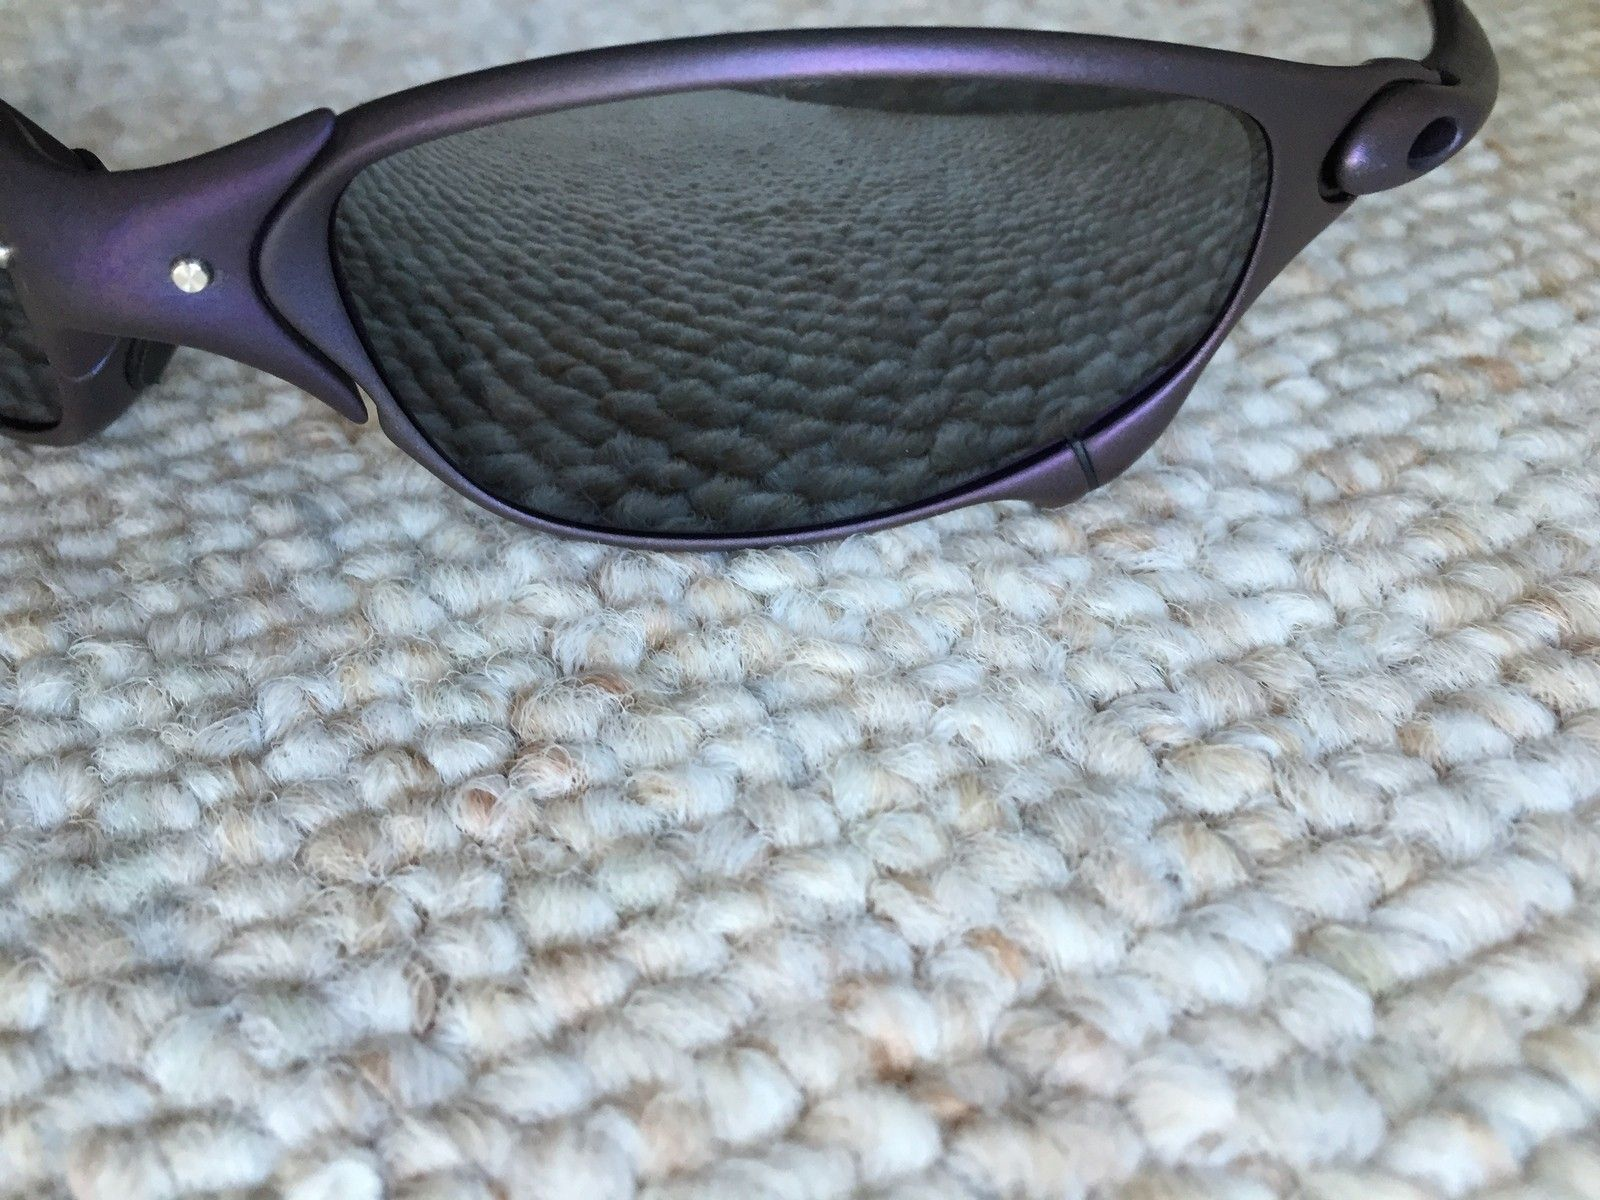 Anodized Juliet X-Metal Finish Purple w/ Brand New OEM Black Lenses - IMG_1742.jpg